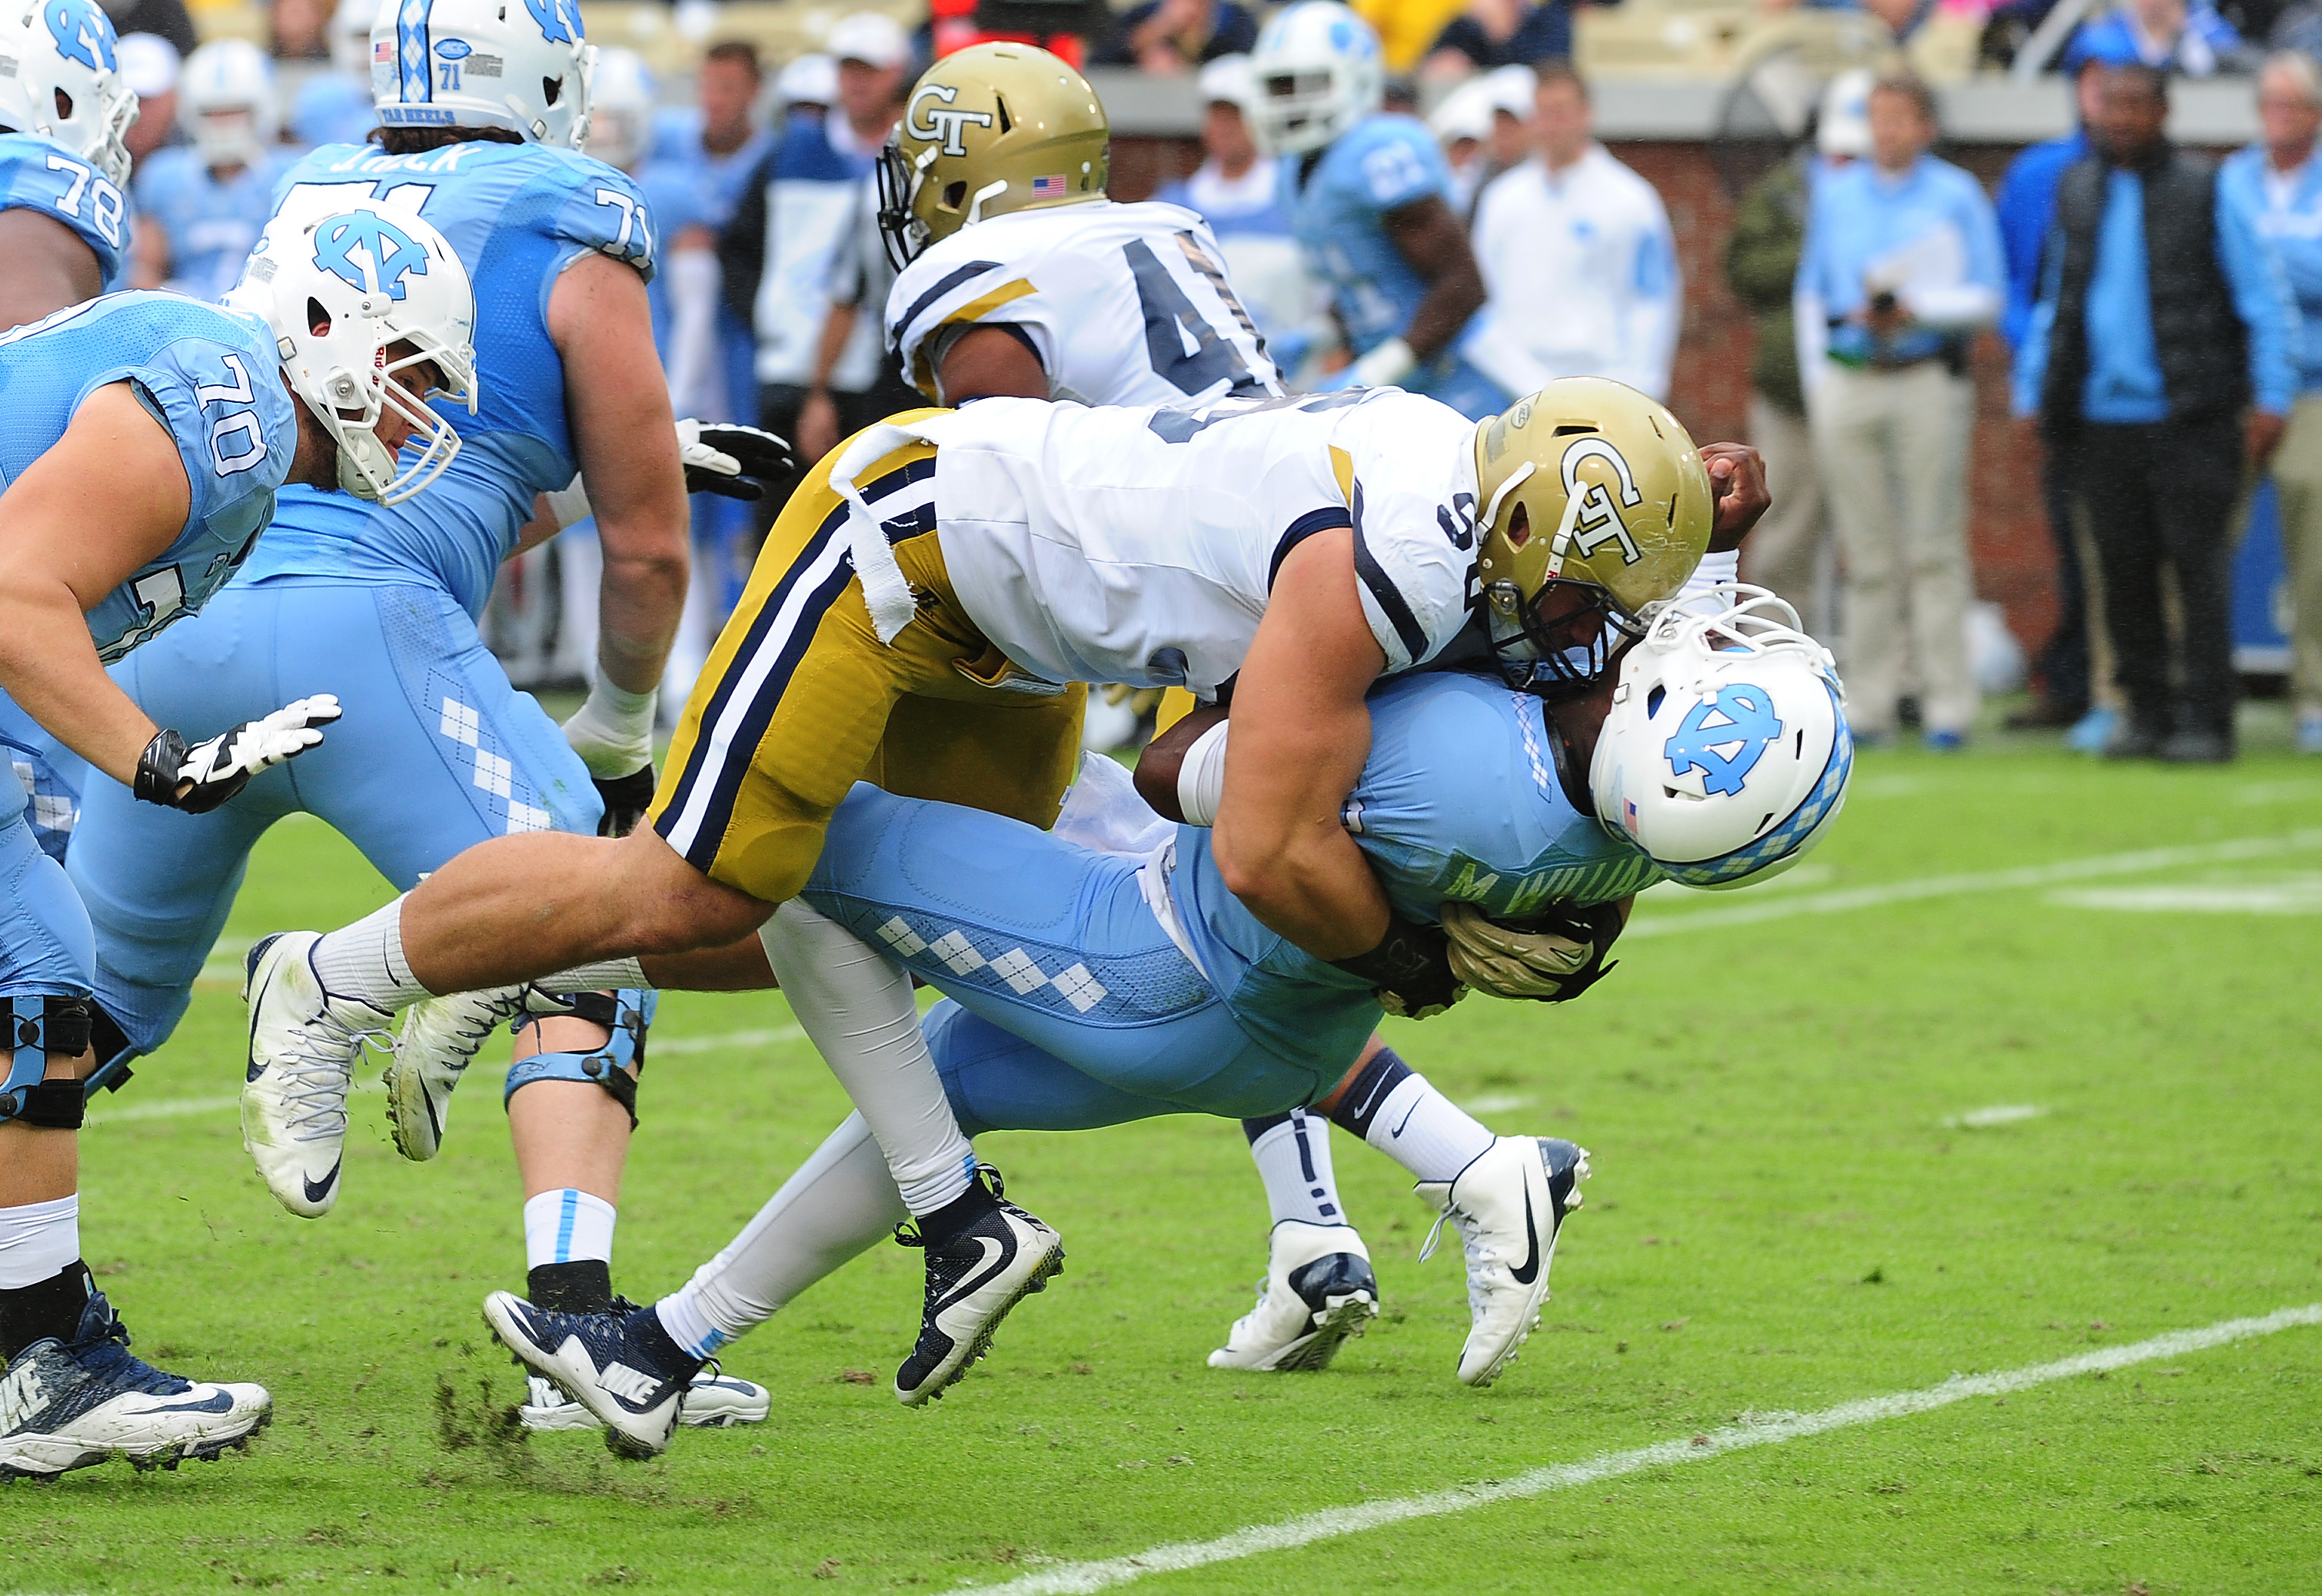 Marquise Williams of the North Carolina Tar Heels takes a hit from Adam Gotsis #96 of the Georgia Tech Yellow Jackets on October 3, 2015 in Atlanta, Georgia. Gotsis would be penalized and ejected from the game for the hit. (credit: Scott Cunningham/Getty Images)